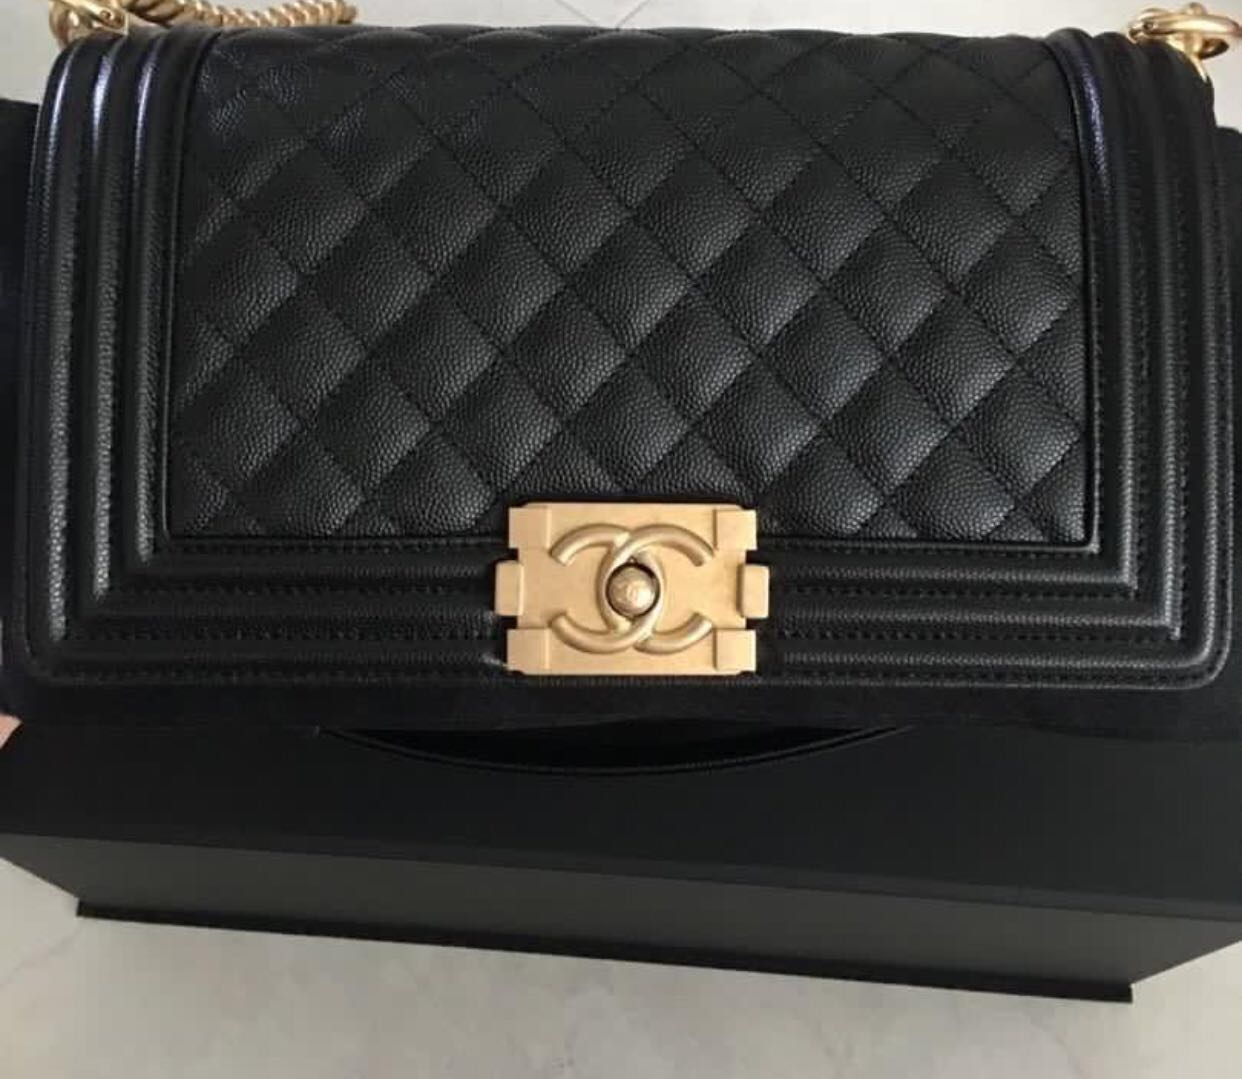 6e68cc05d671 Chanel Boy in Black Caviar GHW Old Medium